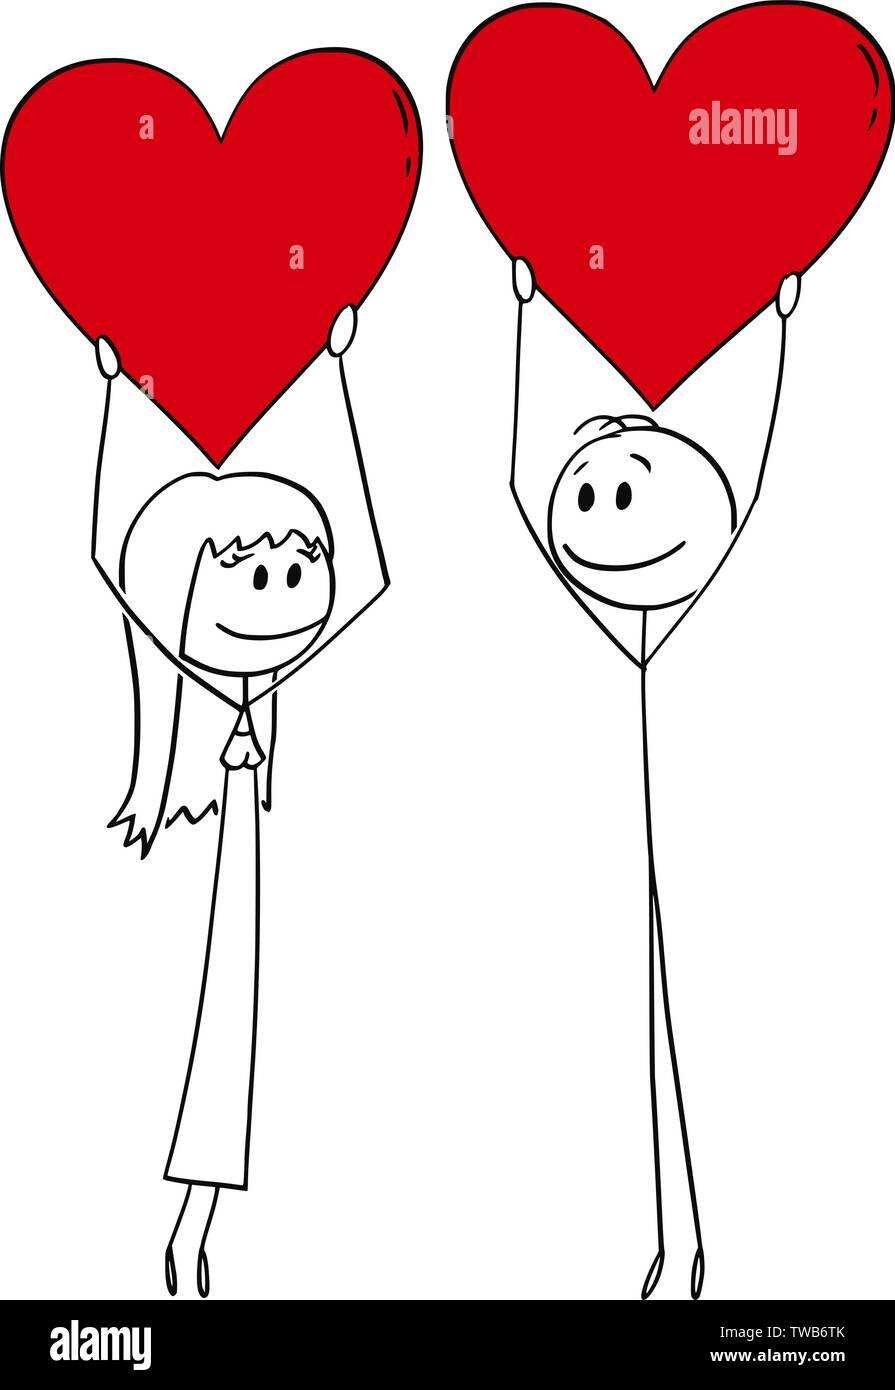 Vector cartoon stick figure drawing conceptual illustration of heterosexual couple of man and woman on date holding big red hearts. - Stock Image